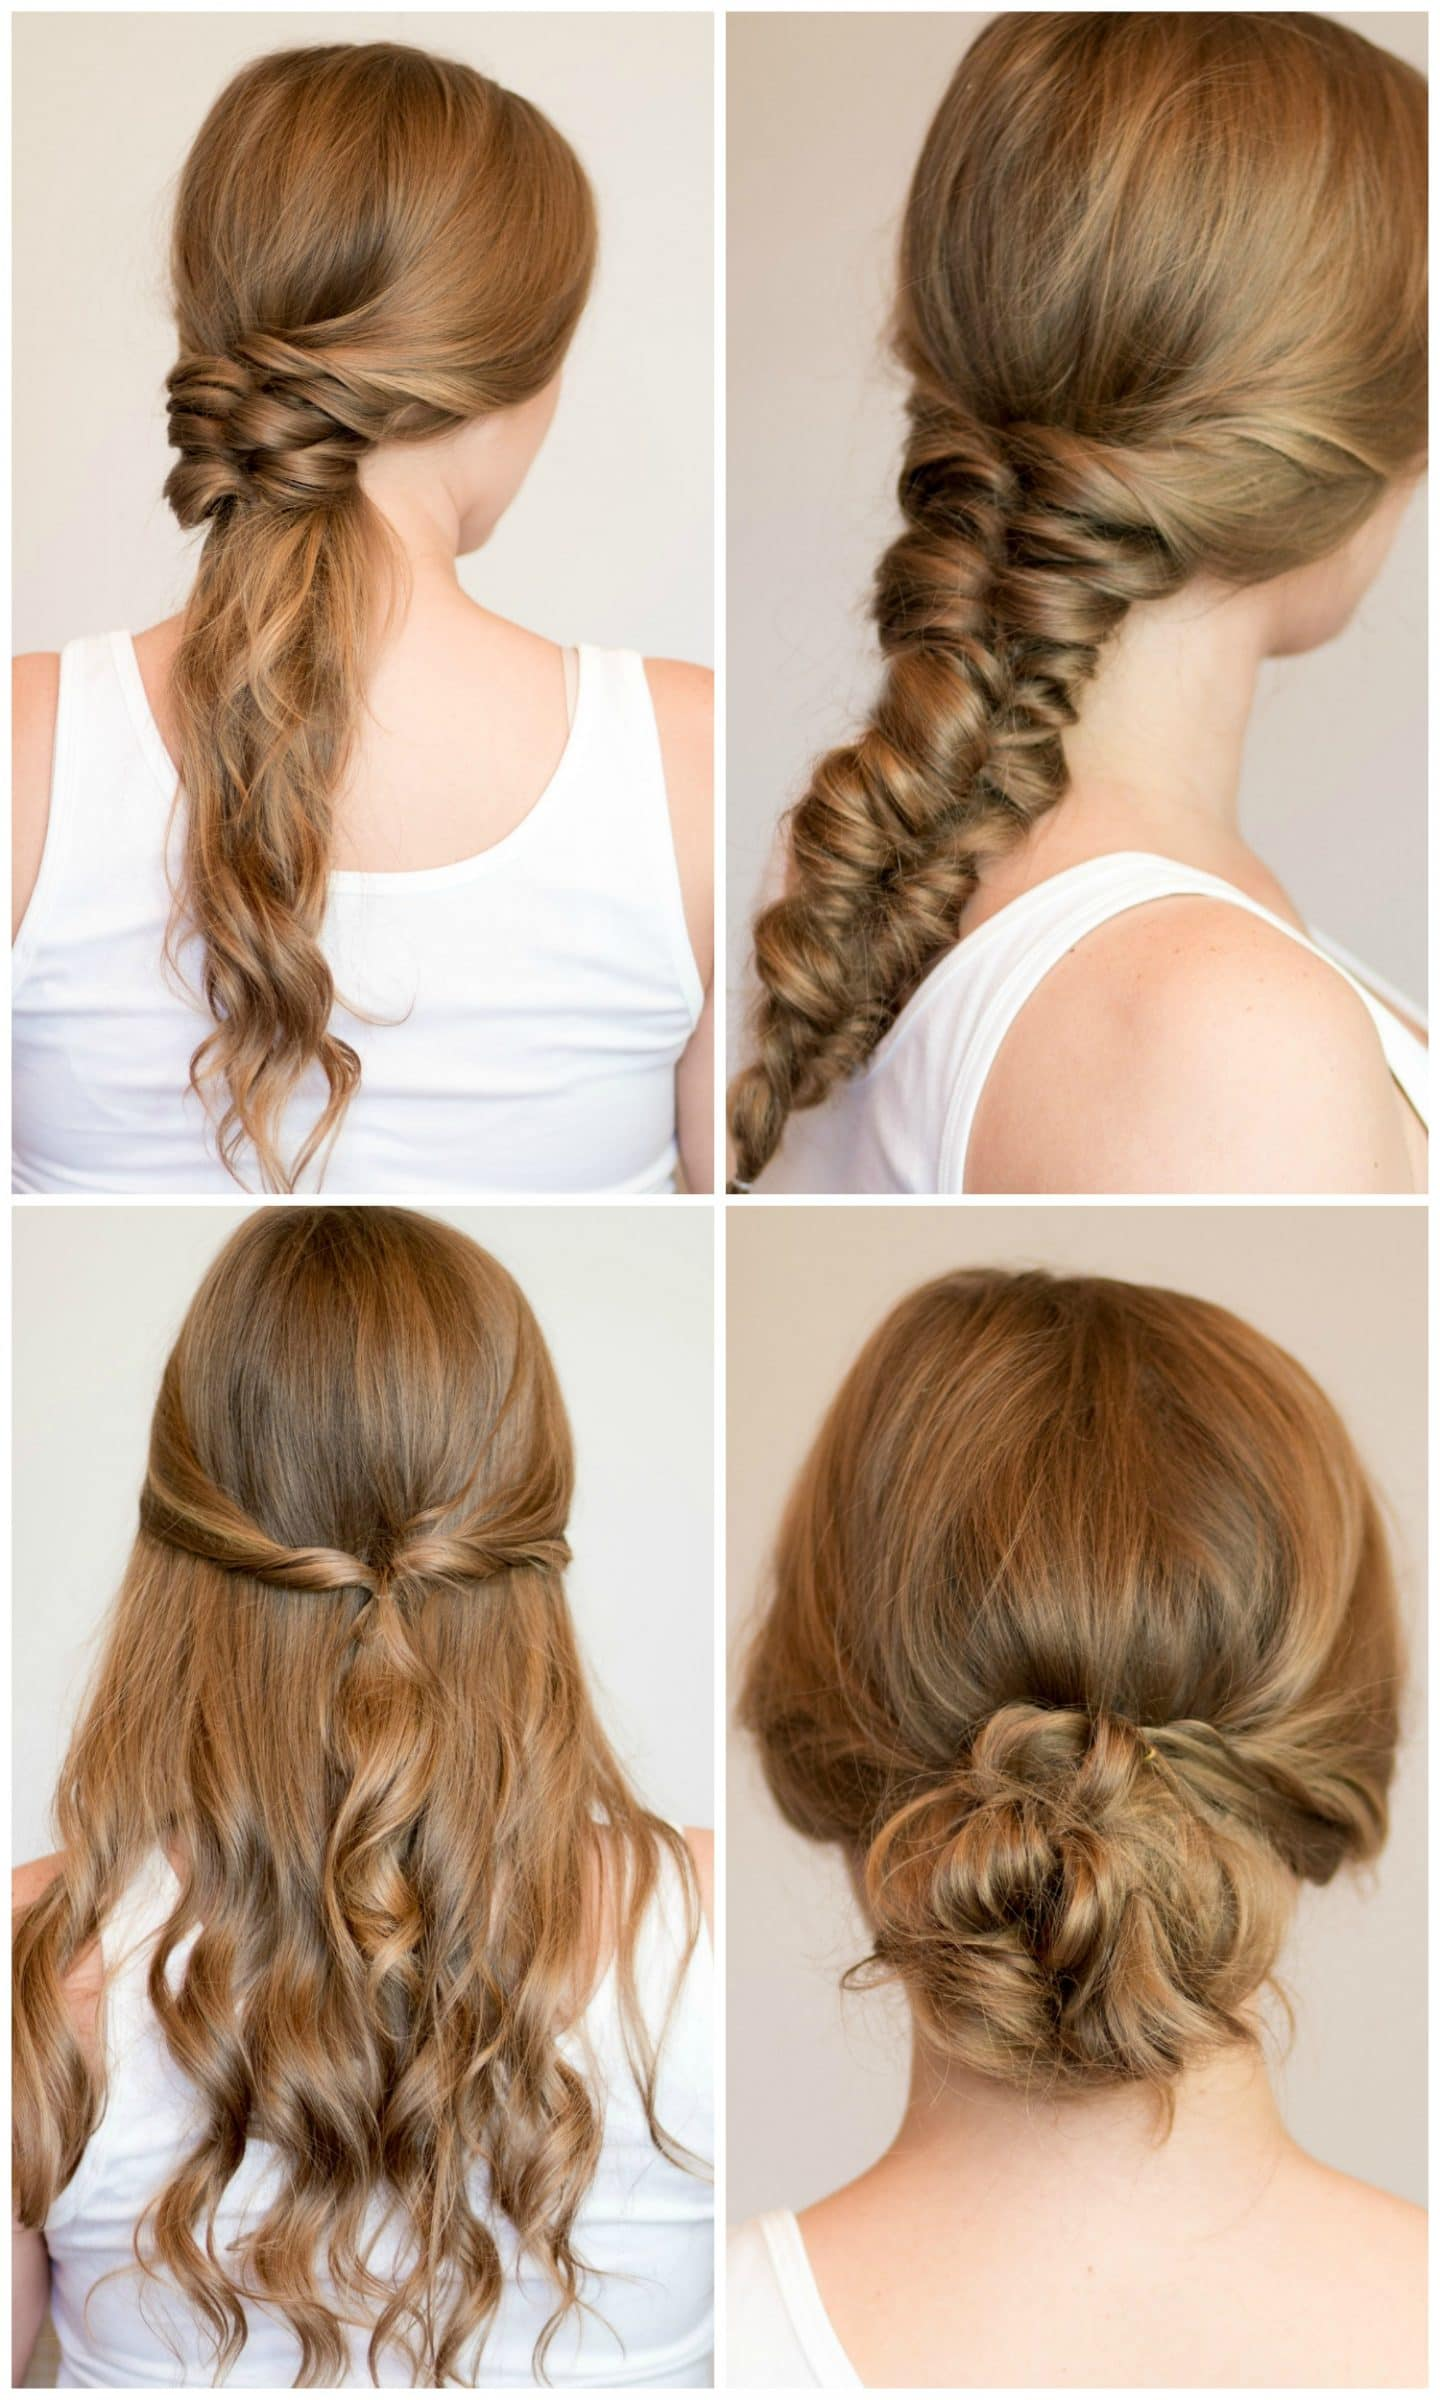 hair braid tutorial for short hair